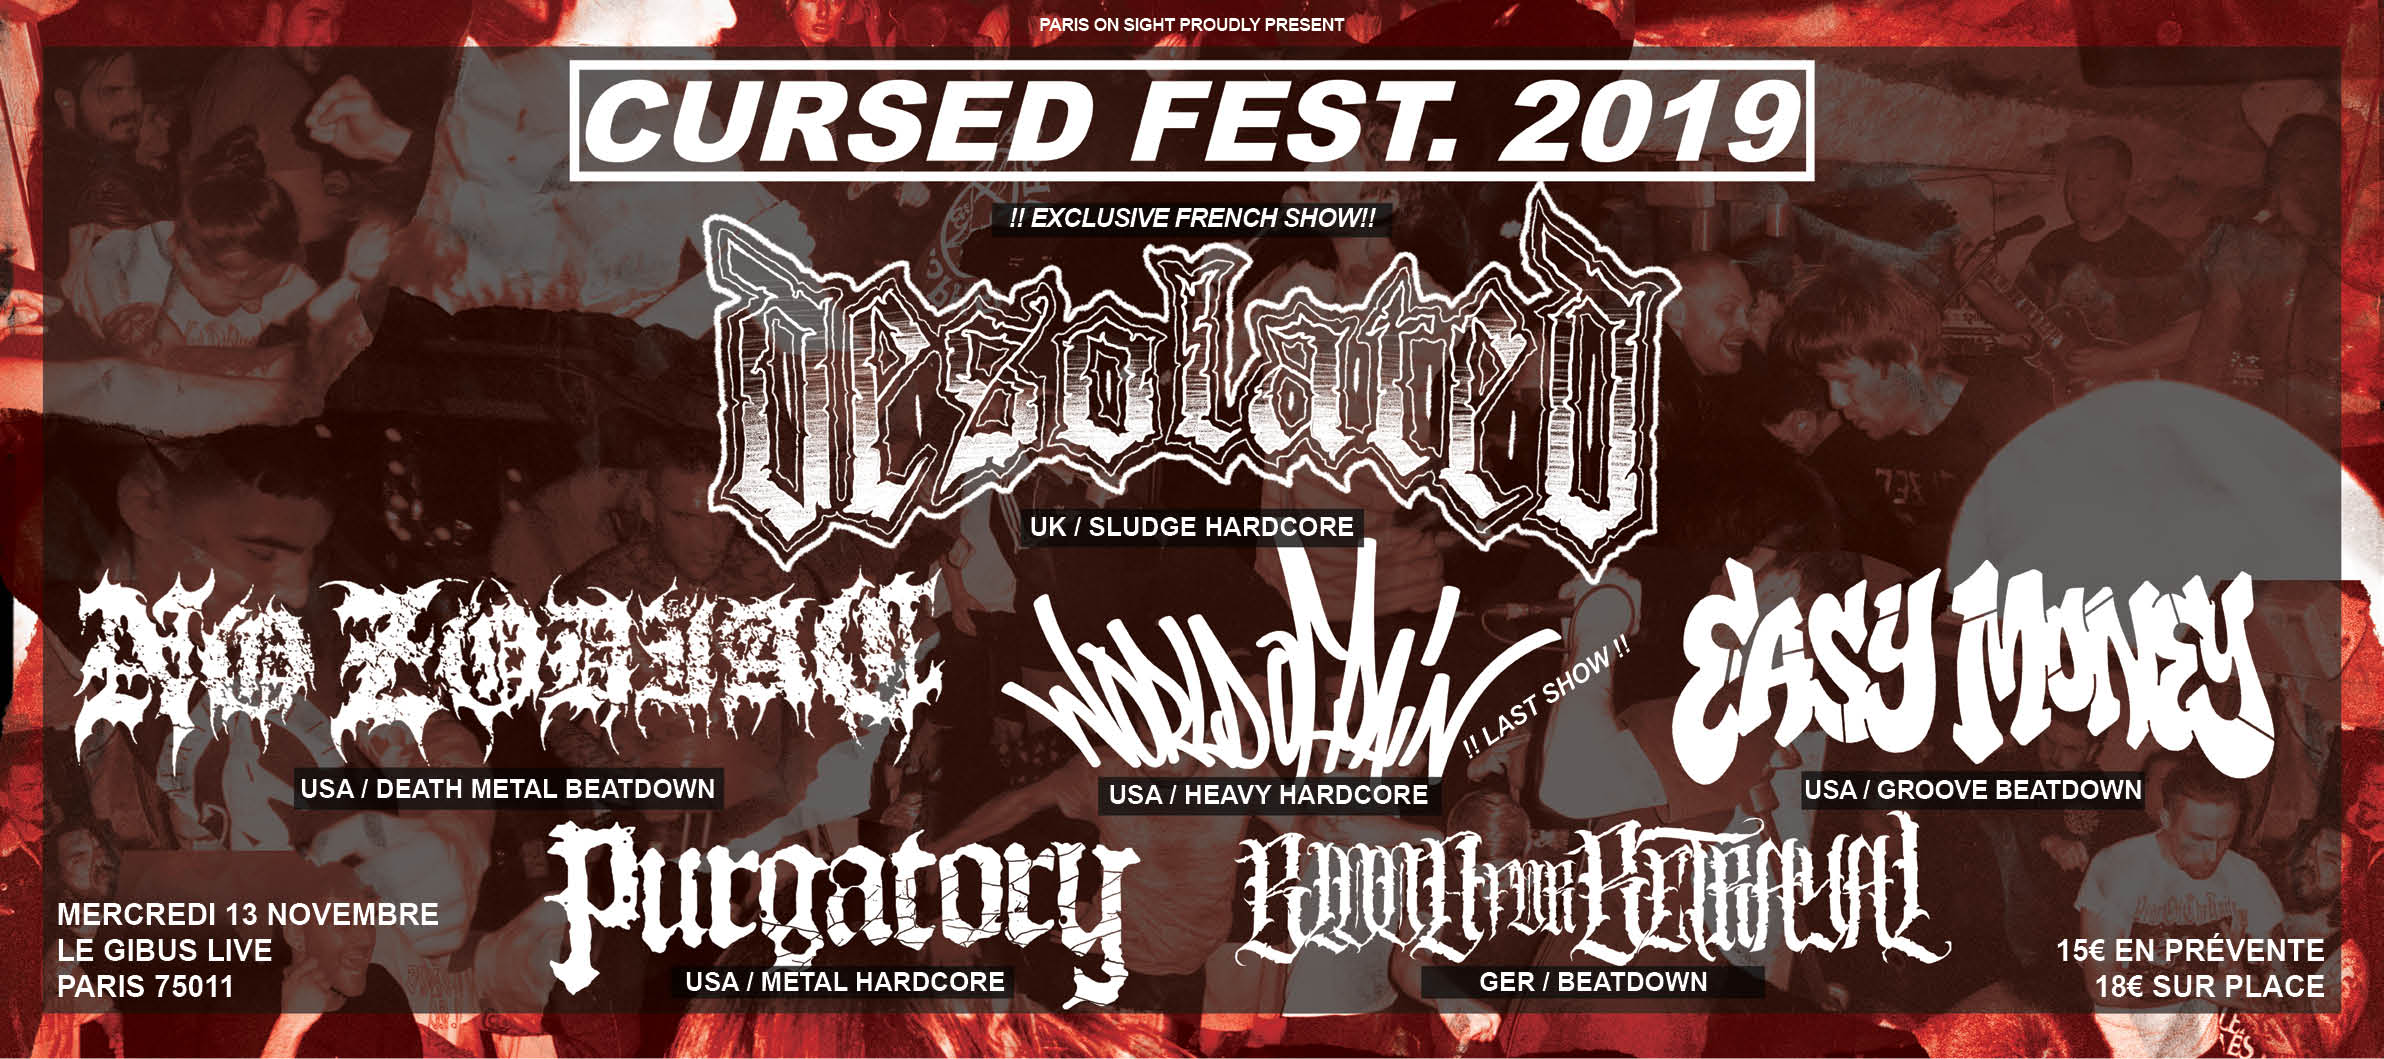 13/11/2019 – Cursed Fest. 2019 • Desolated • NO ZODIAC • World Of Pain…